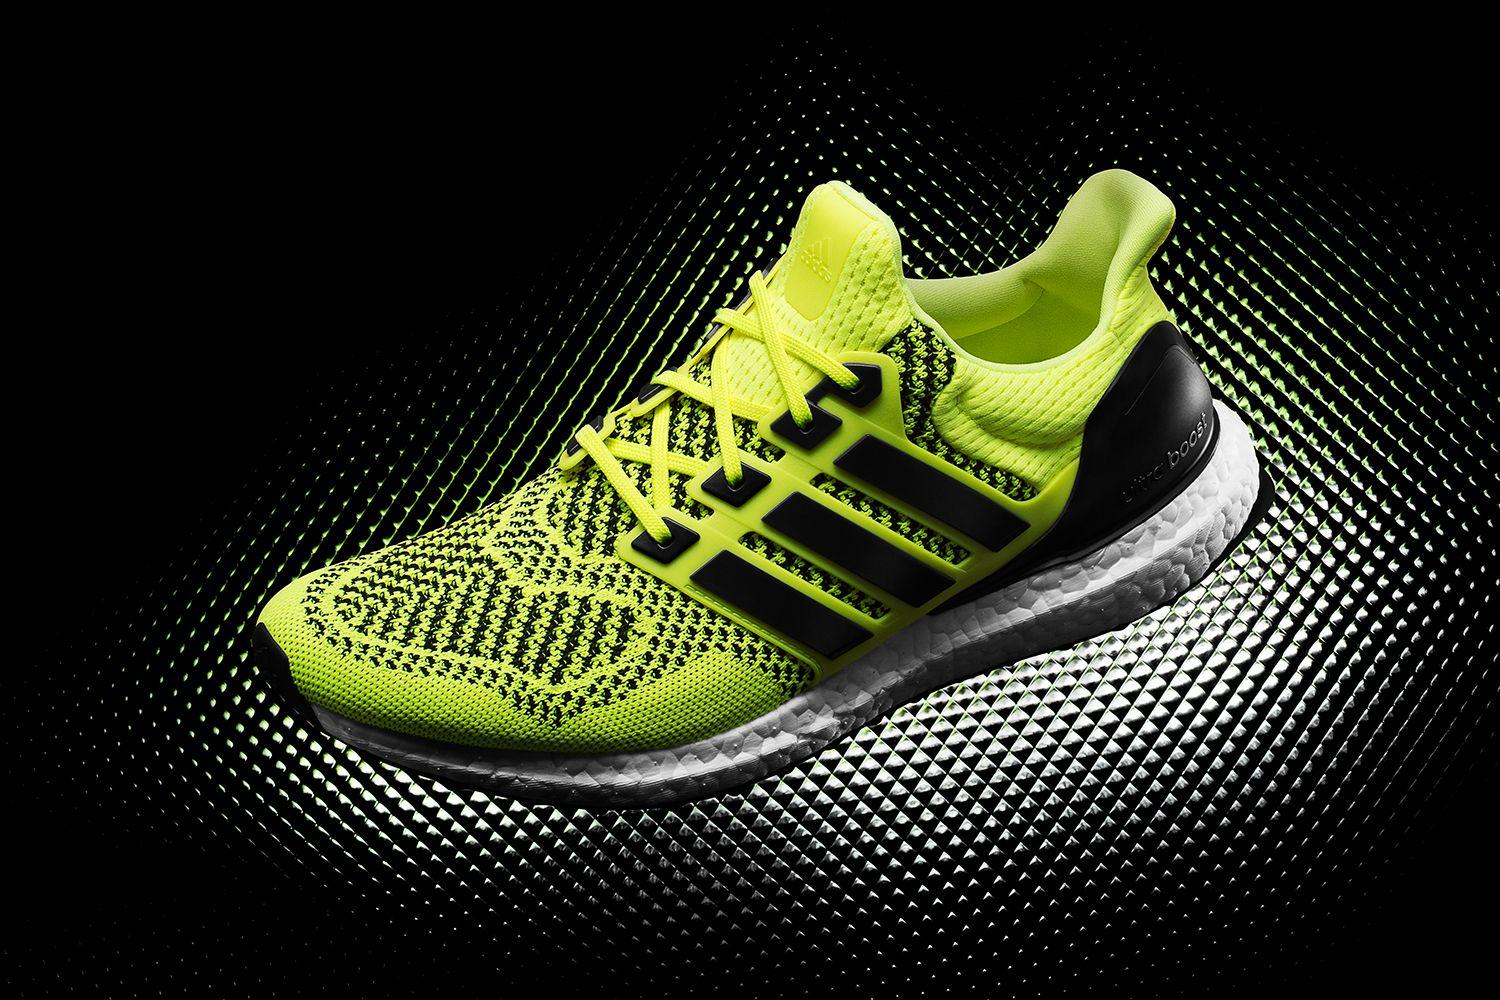 39fc147c43f51 Adidas Ultra Boost Iphone Wallpaper wallbank-lfc.co.uk